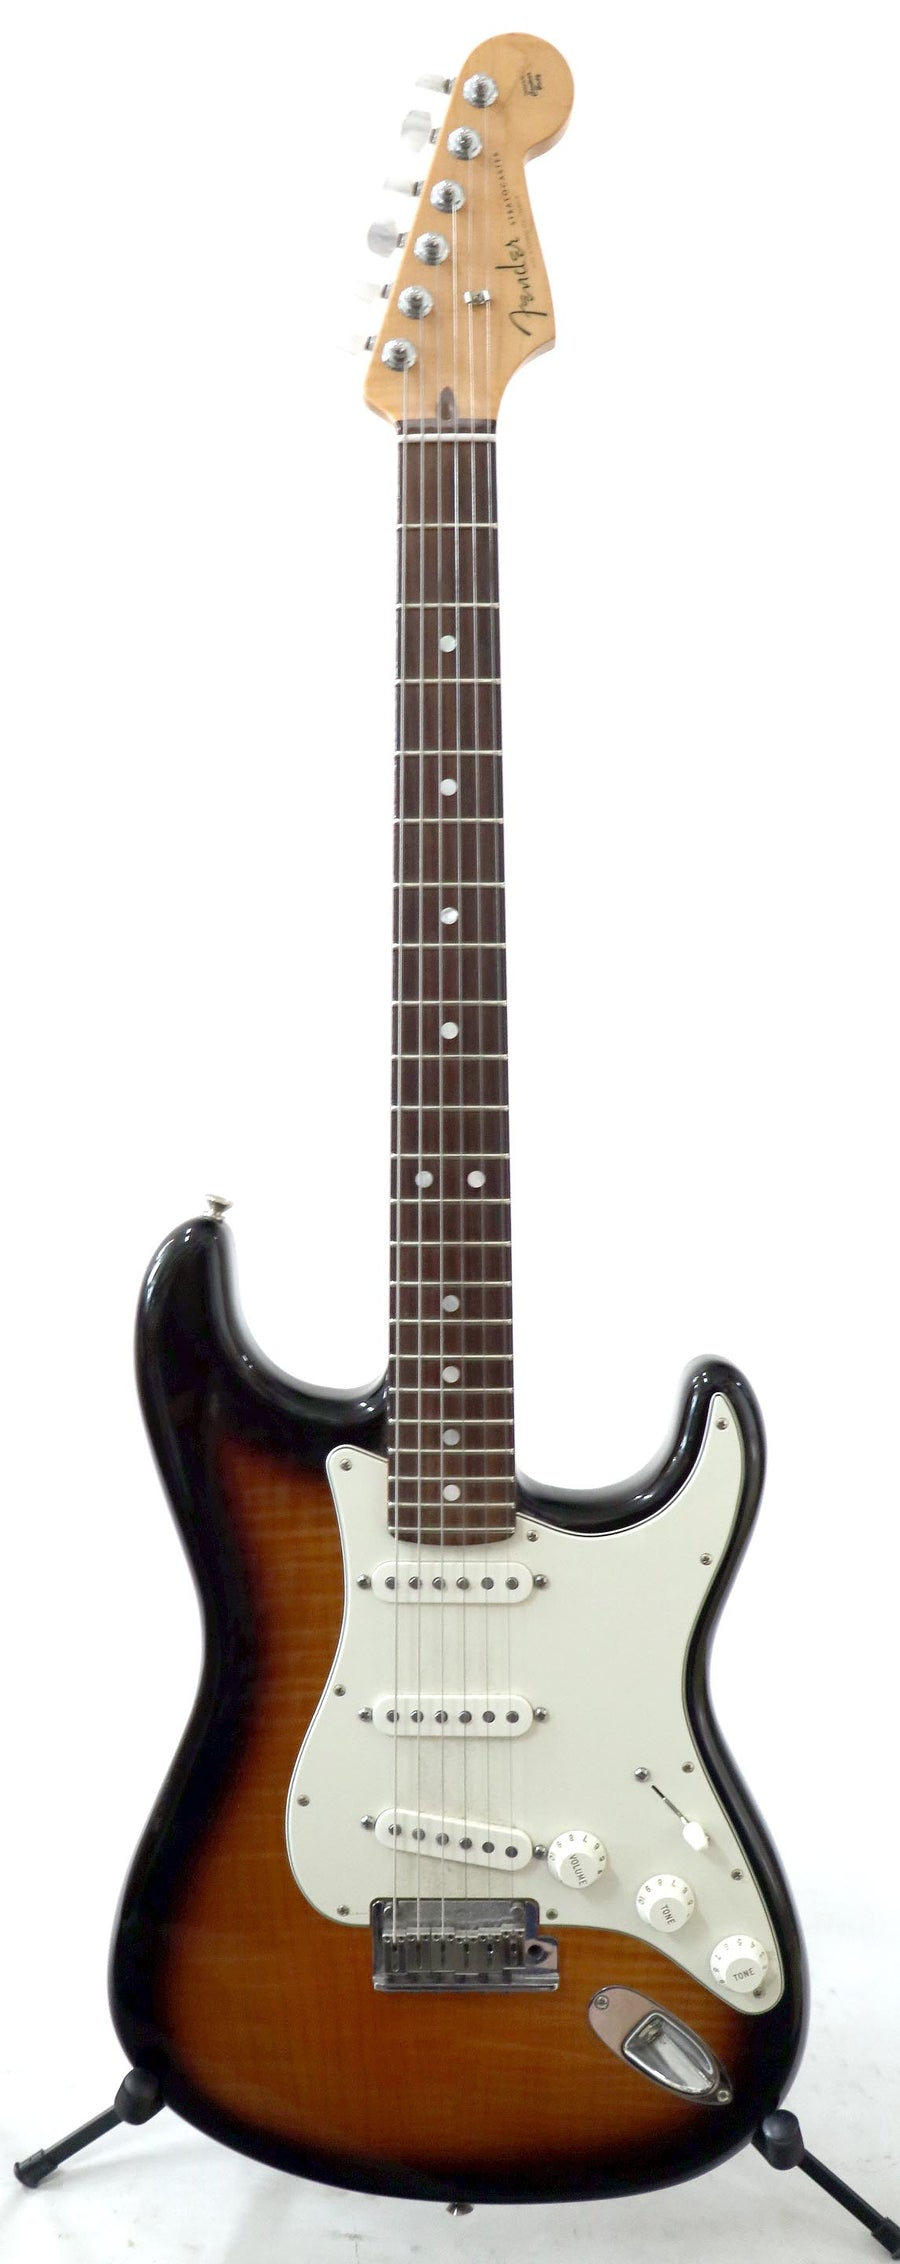 Fender Stratocaster Custom Shop Deluxe